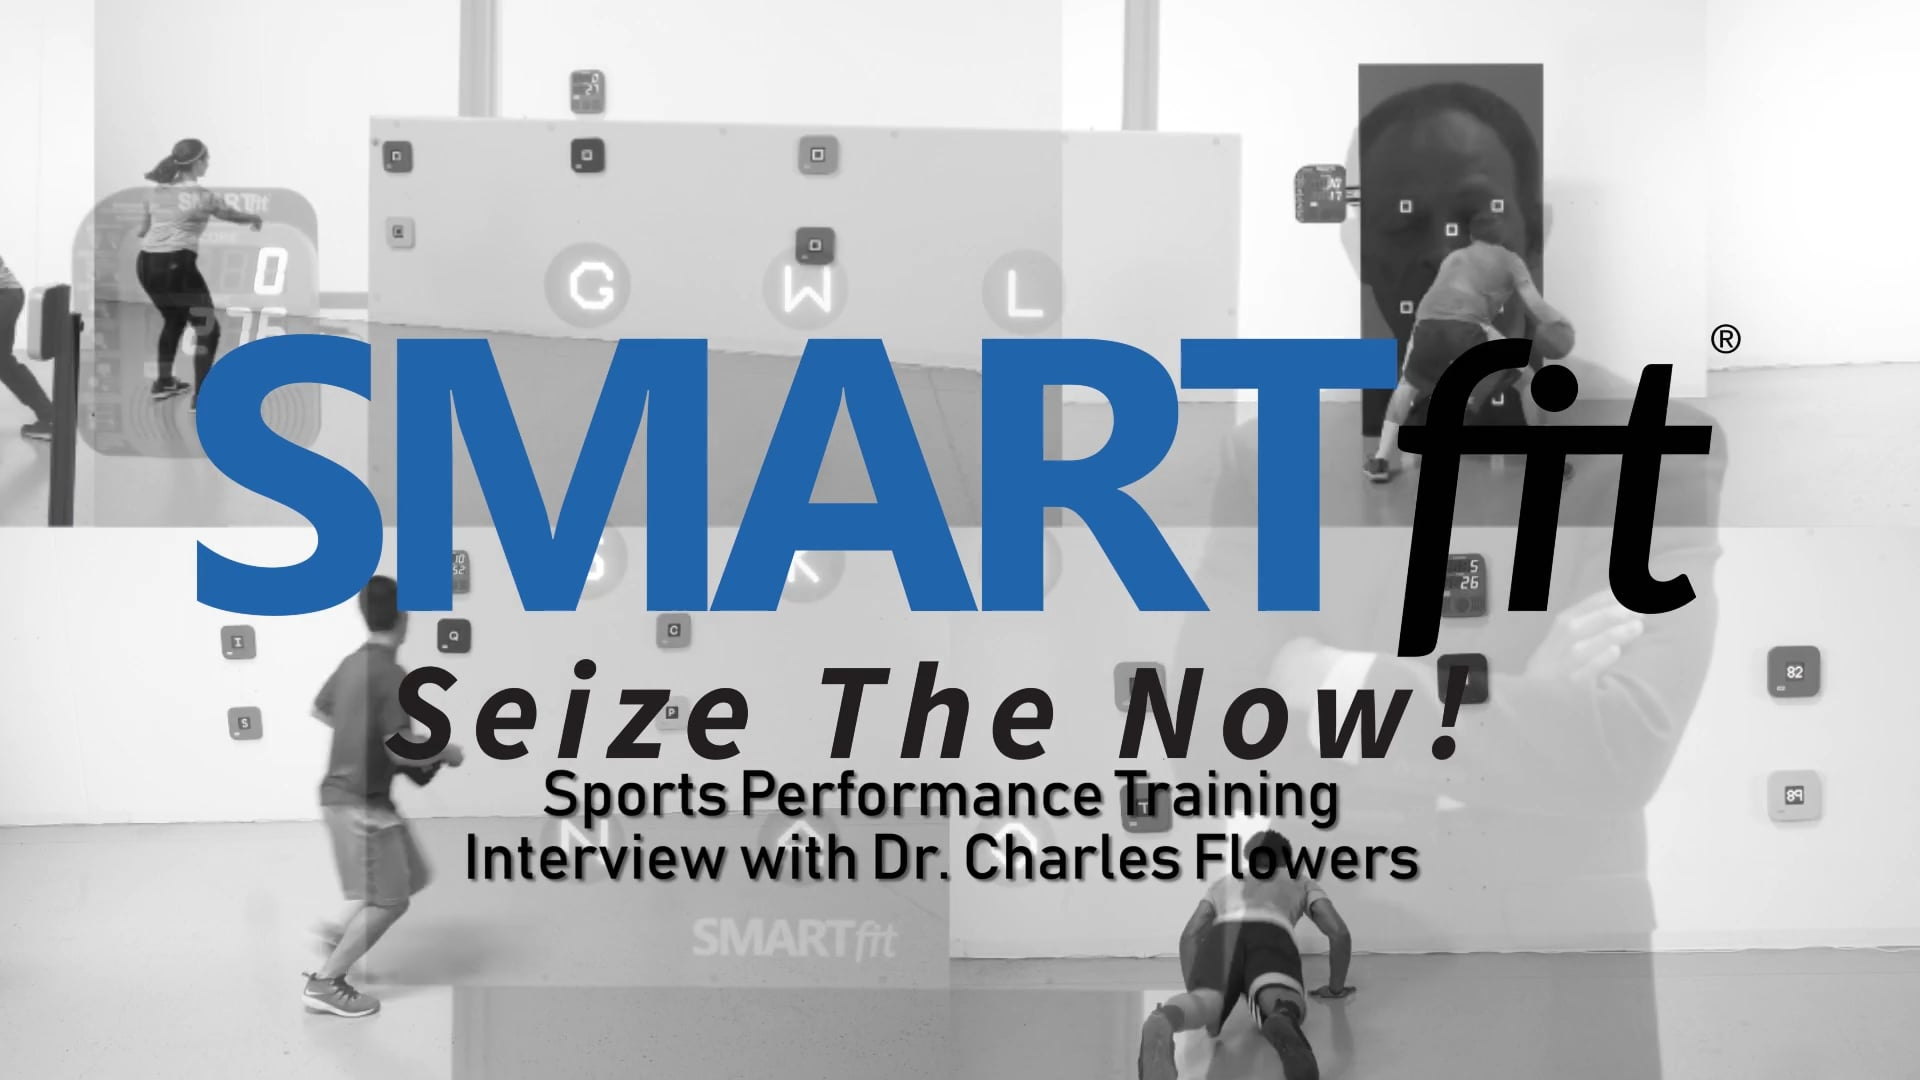 Sports Performance Training with Dr. Charles Flowers